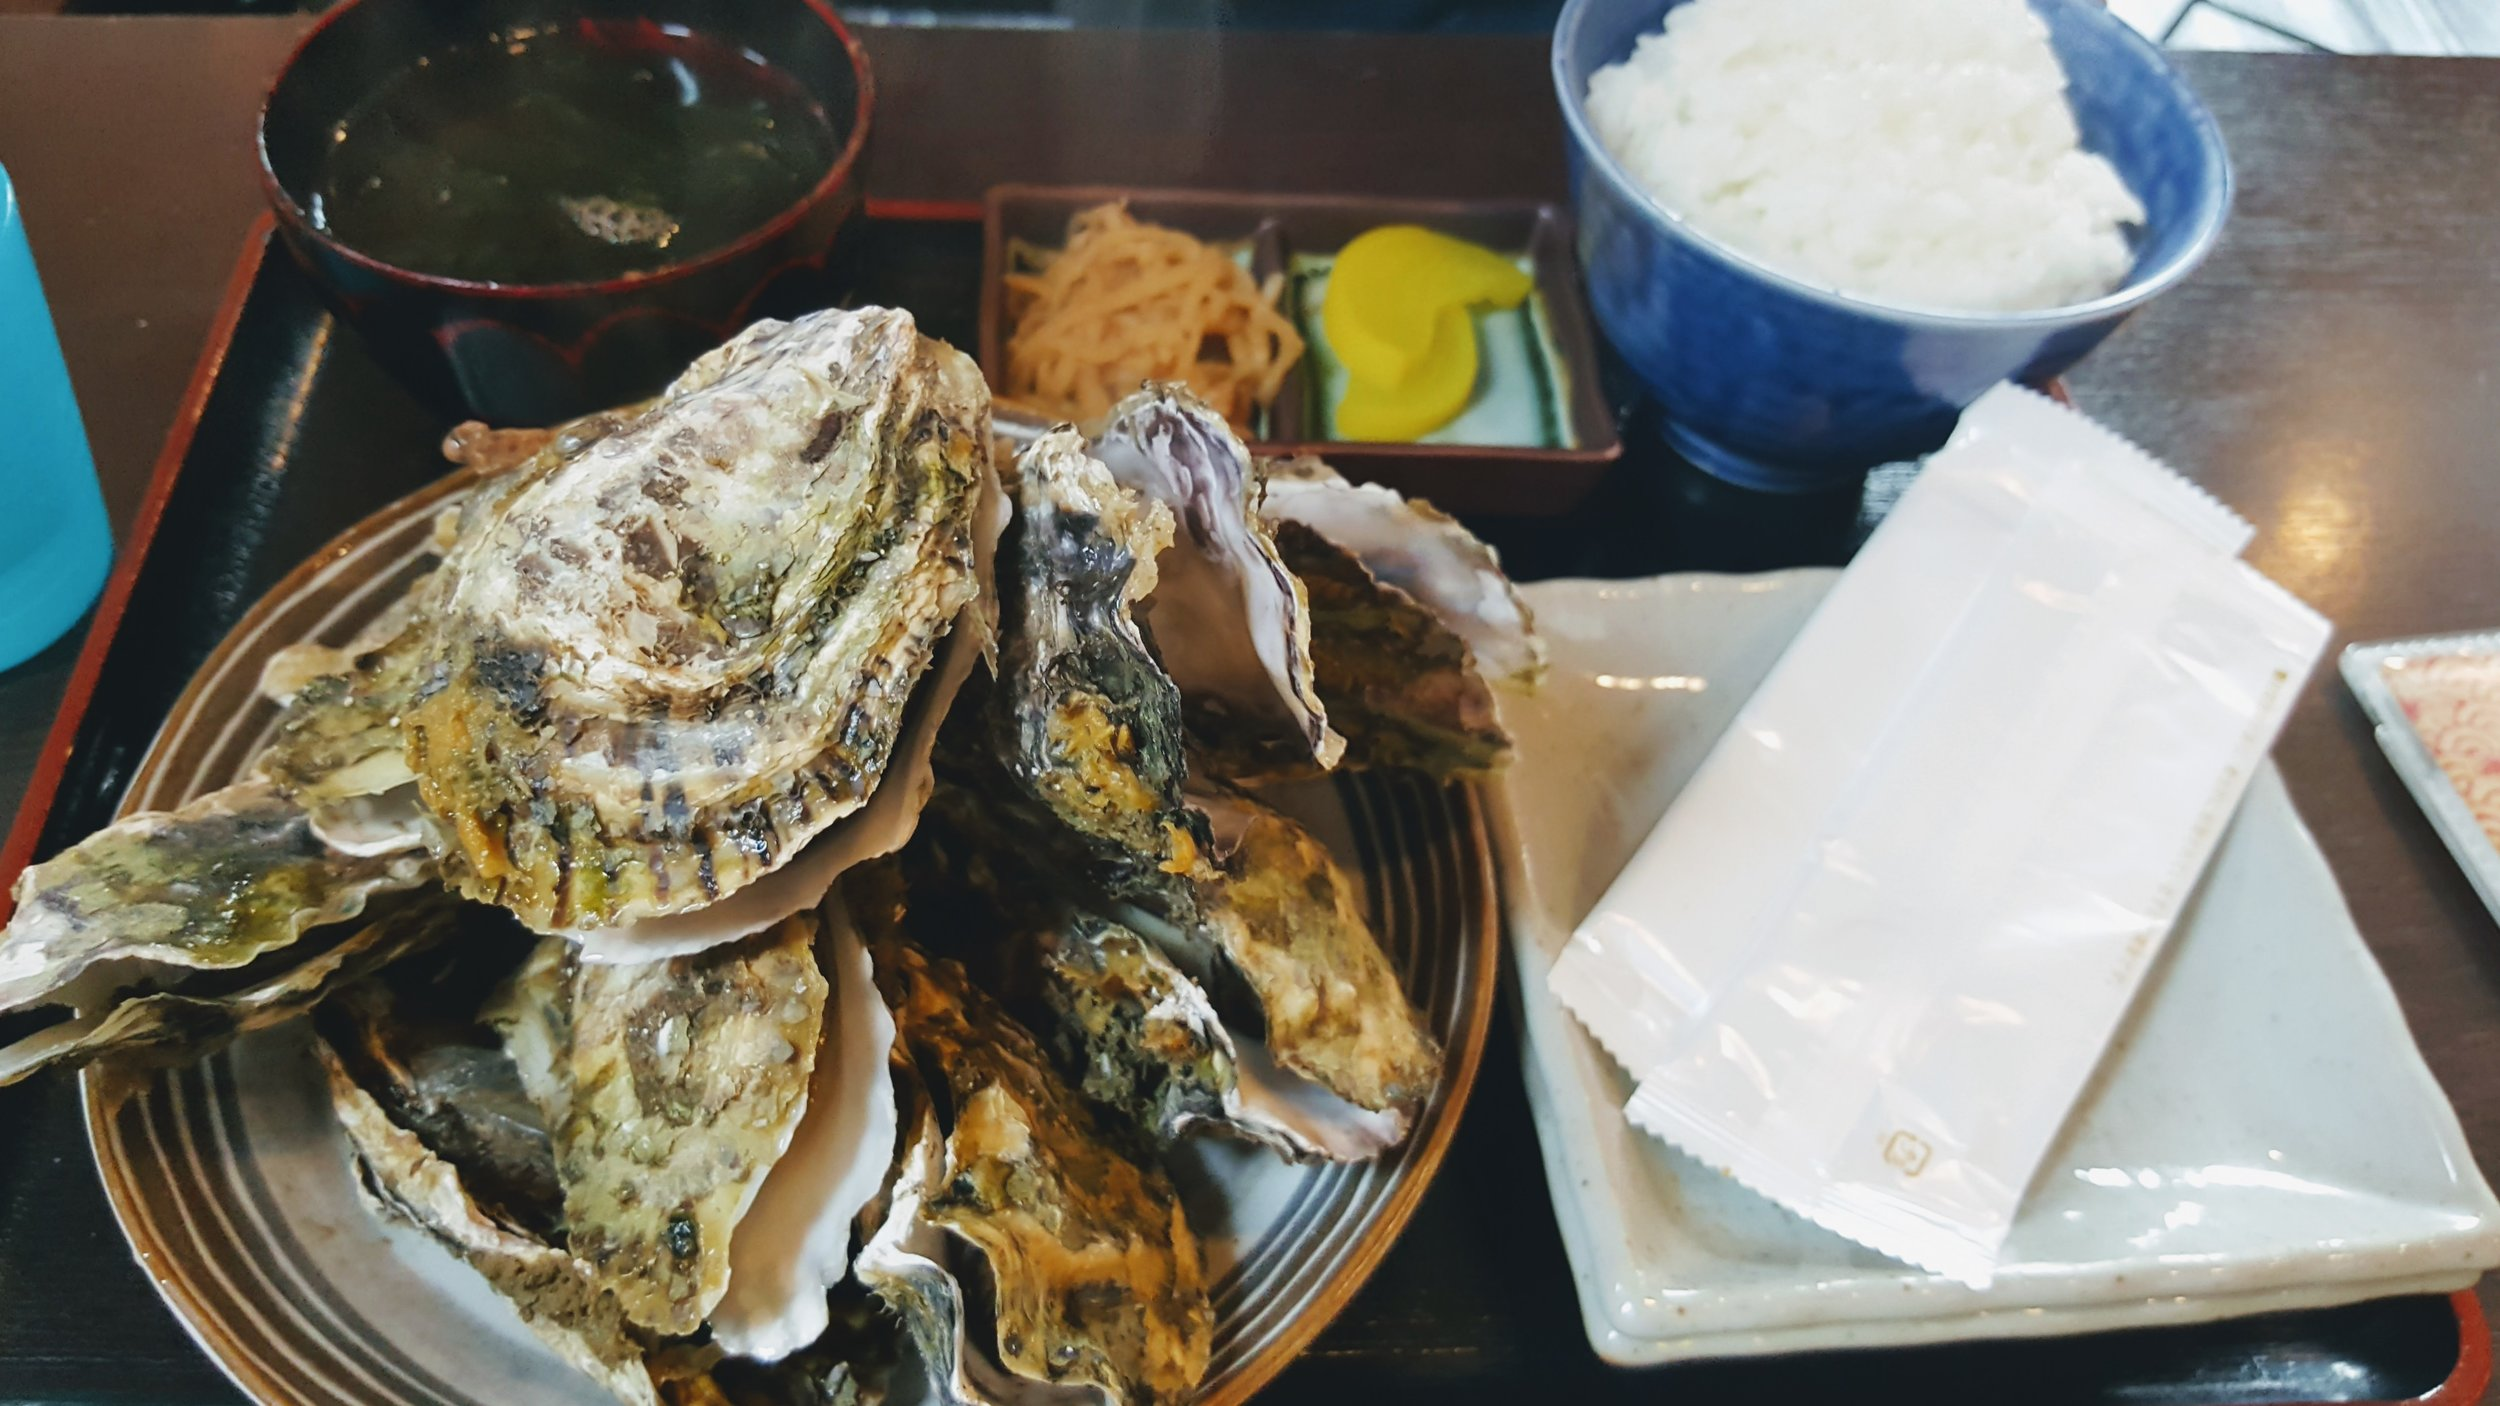 Matsushima Bay - Famous for its gigantic oysters